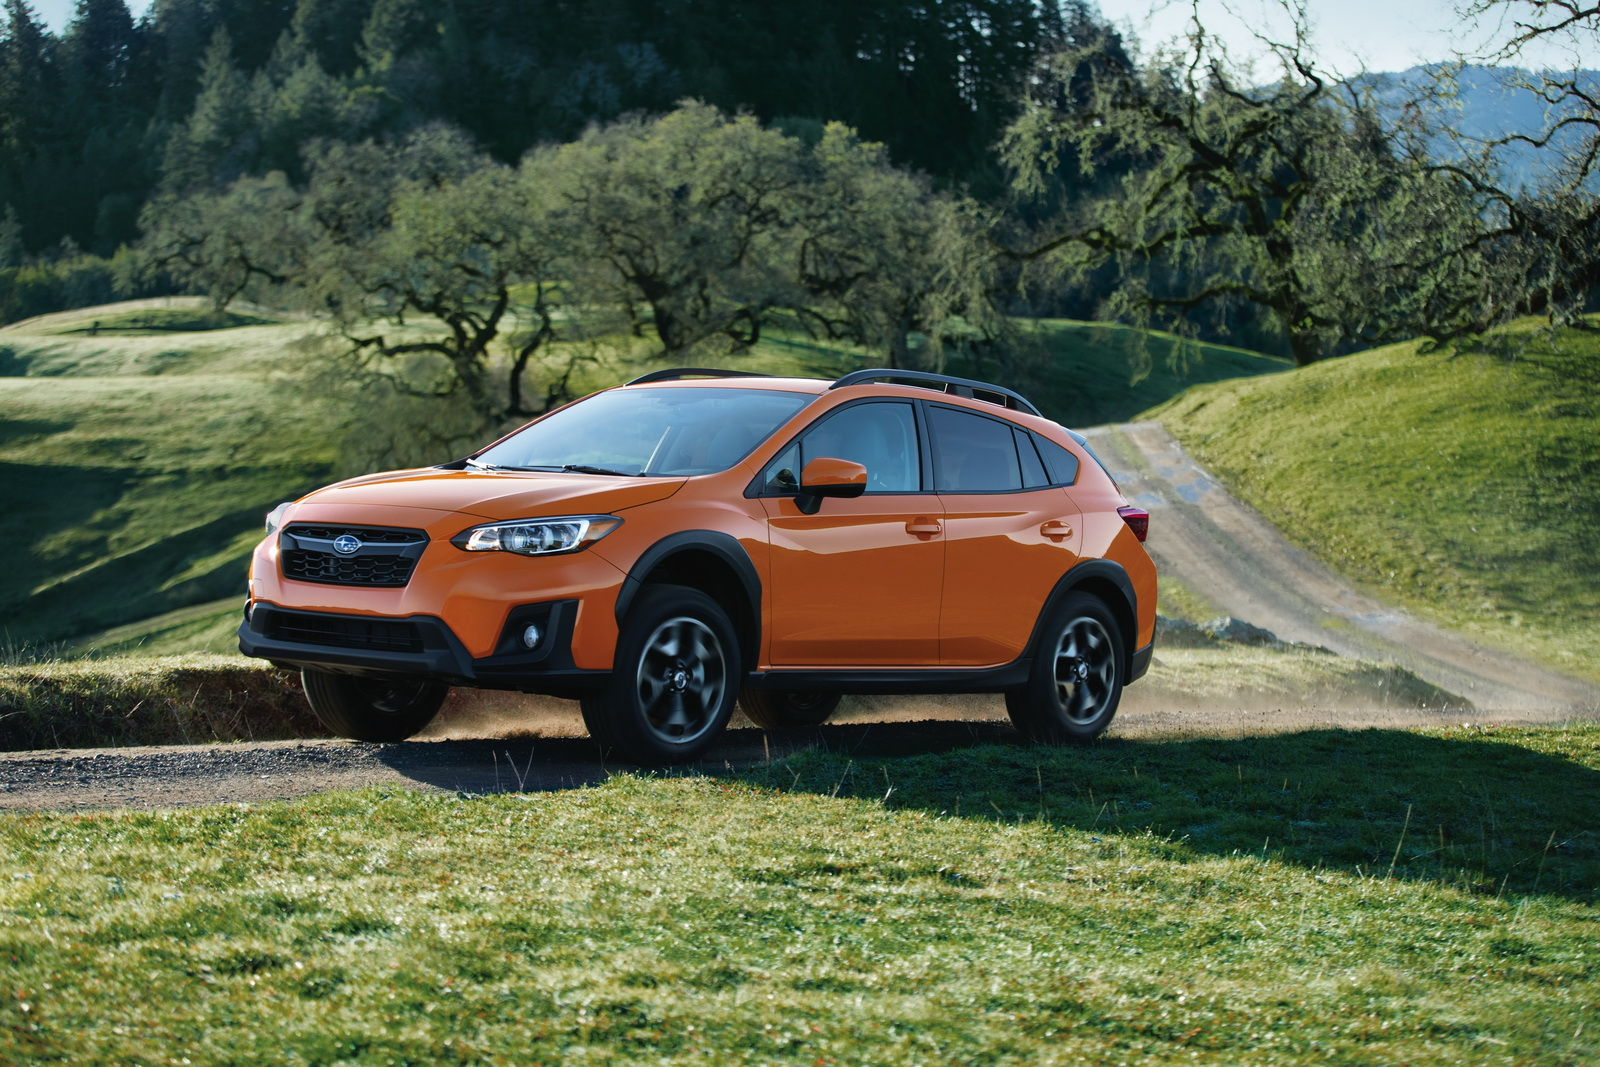 subaru prices all new 2018 crosstrek from 21 795 30 pics. Black Bedroom Furniture Sets. Home Design Ideas